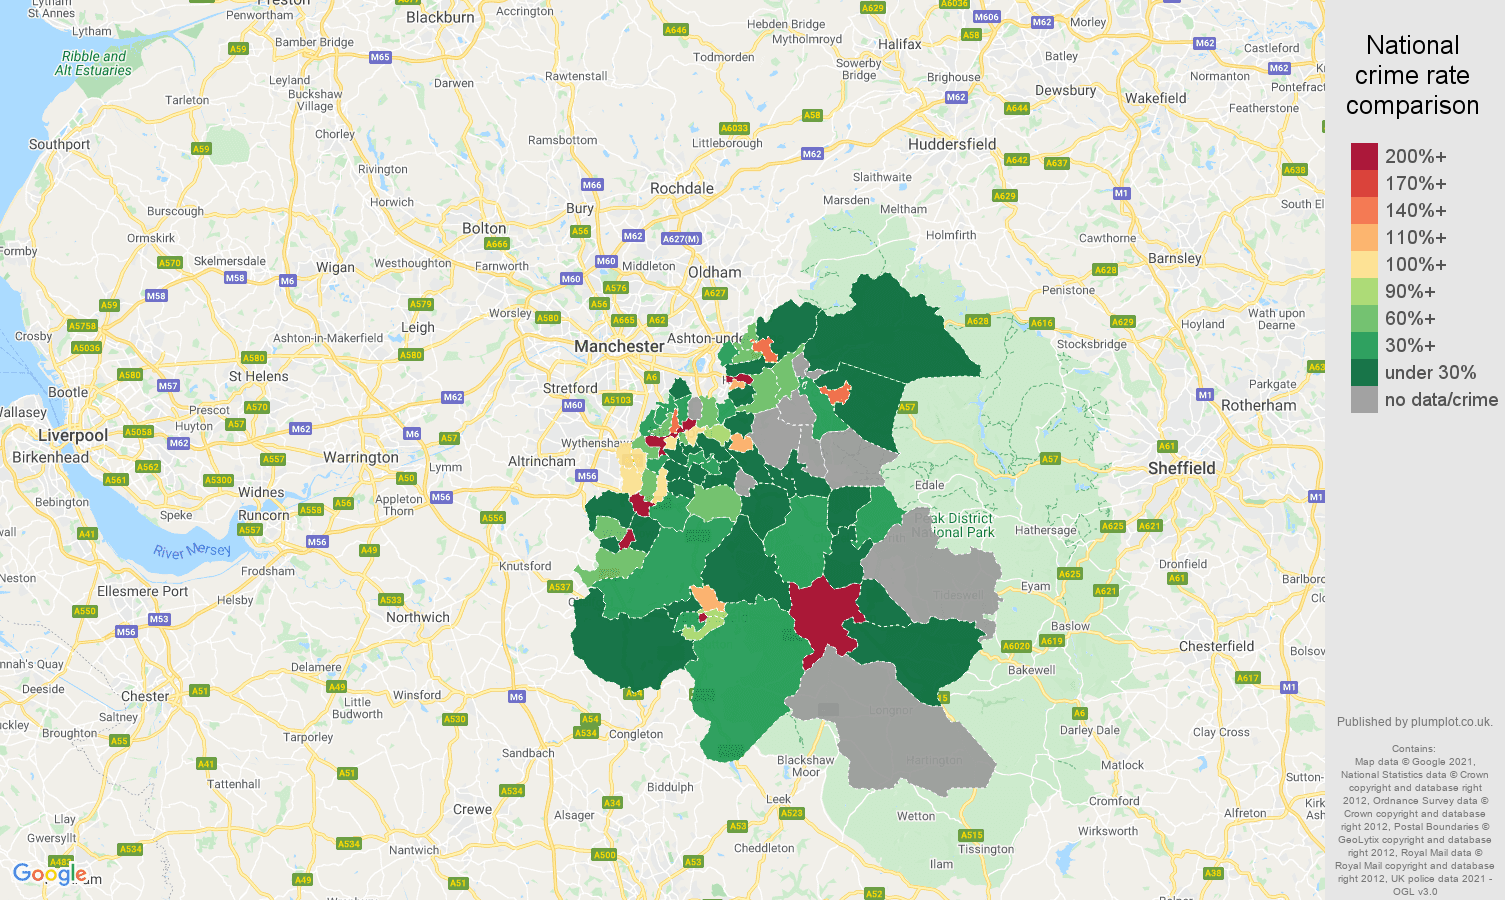 Stockport shoplifting crime rate comparison map